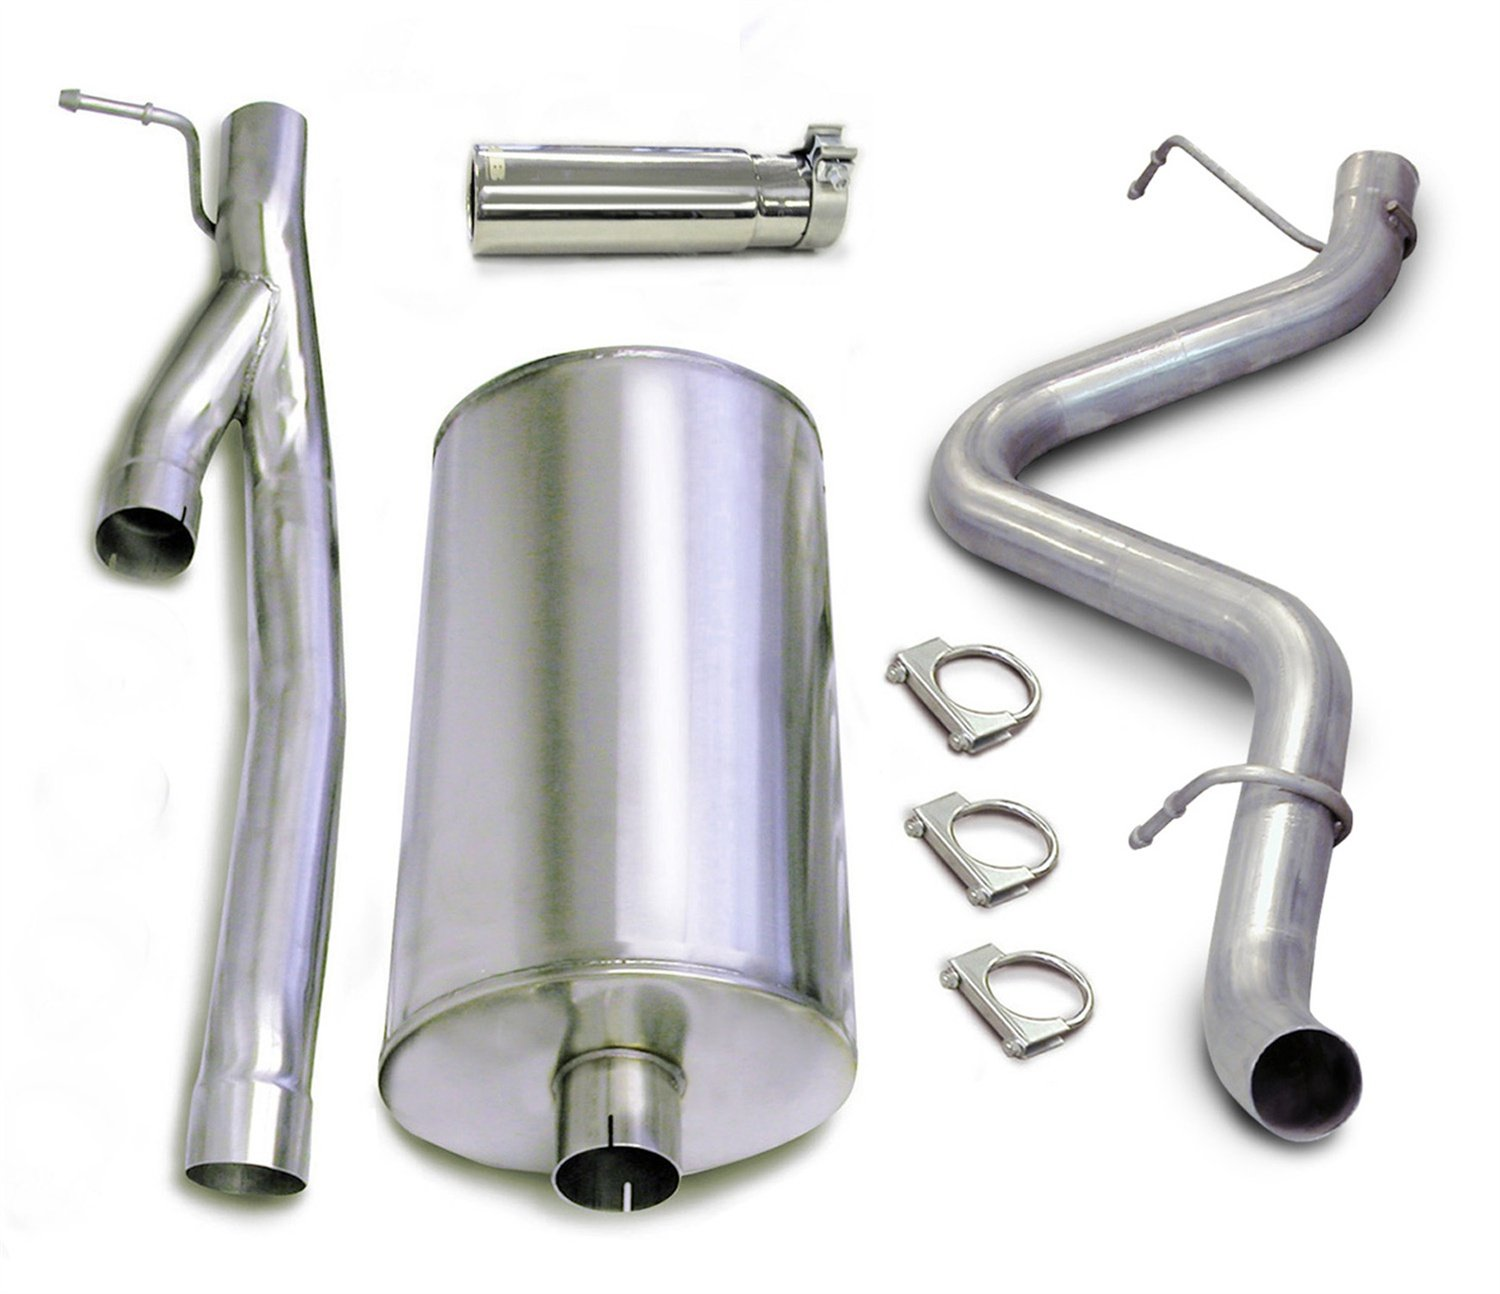 CORSA 24296 Stainless Steel Single Side Exit Cat-Back Exhaust System Kit by Corsa (Image #1)